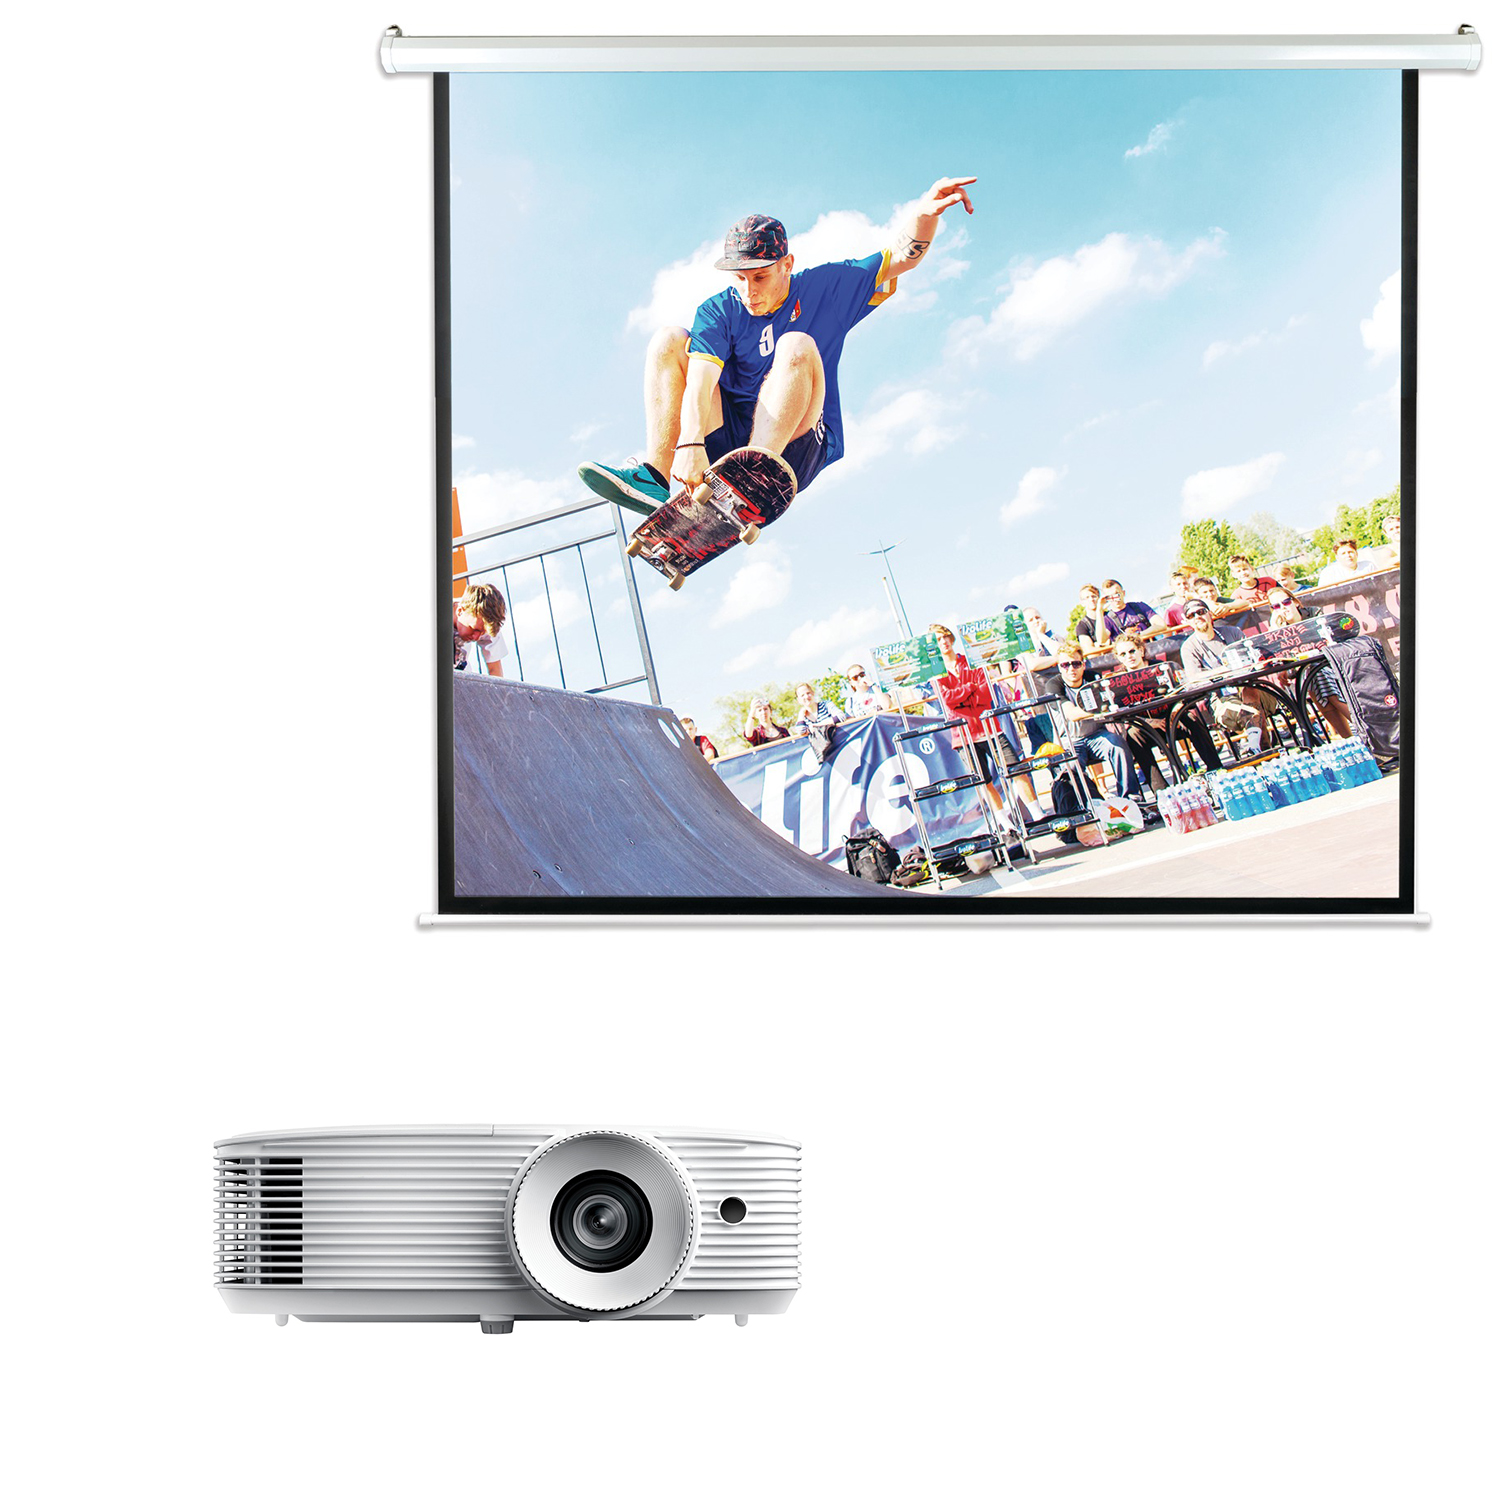 Optoma HD27e 1080p Home Entertainment Projector & Pyle PRJELMT106 Motorized Projector Screen 100""